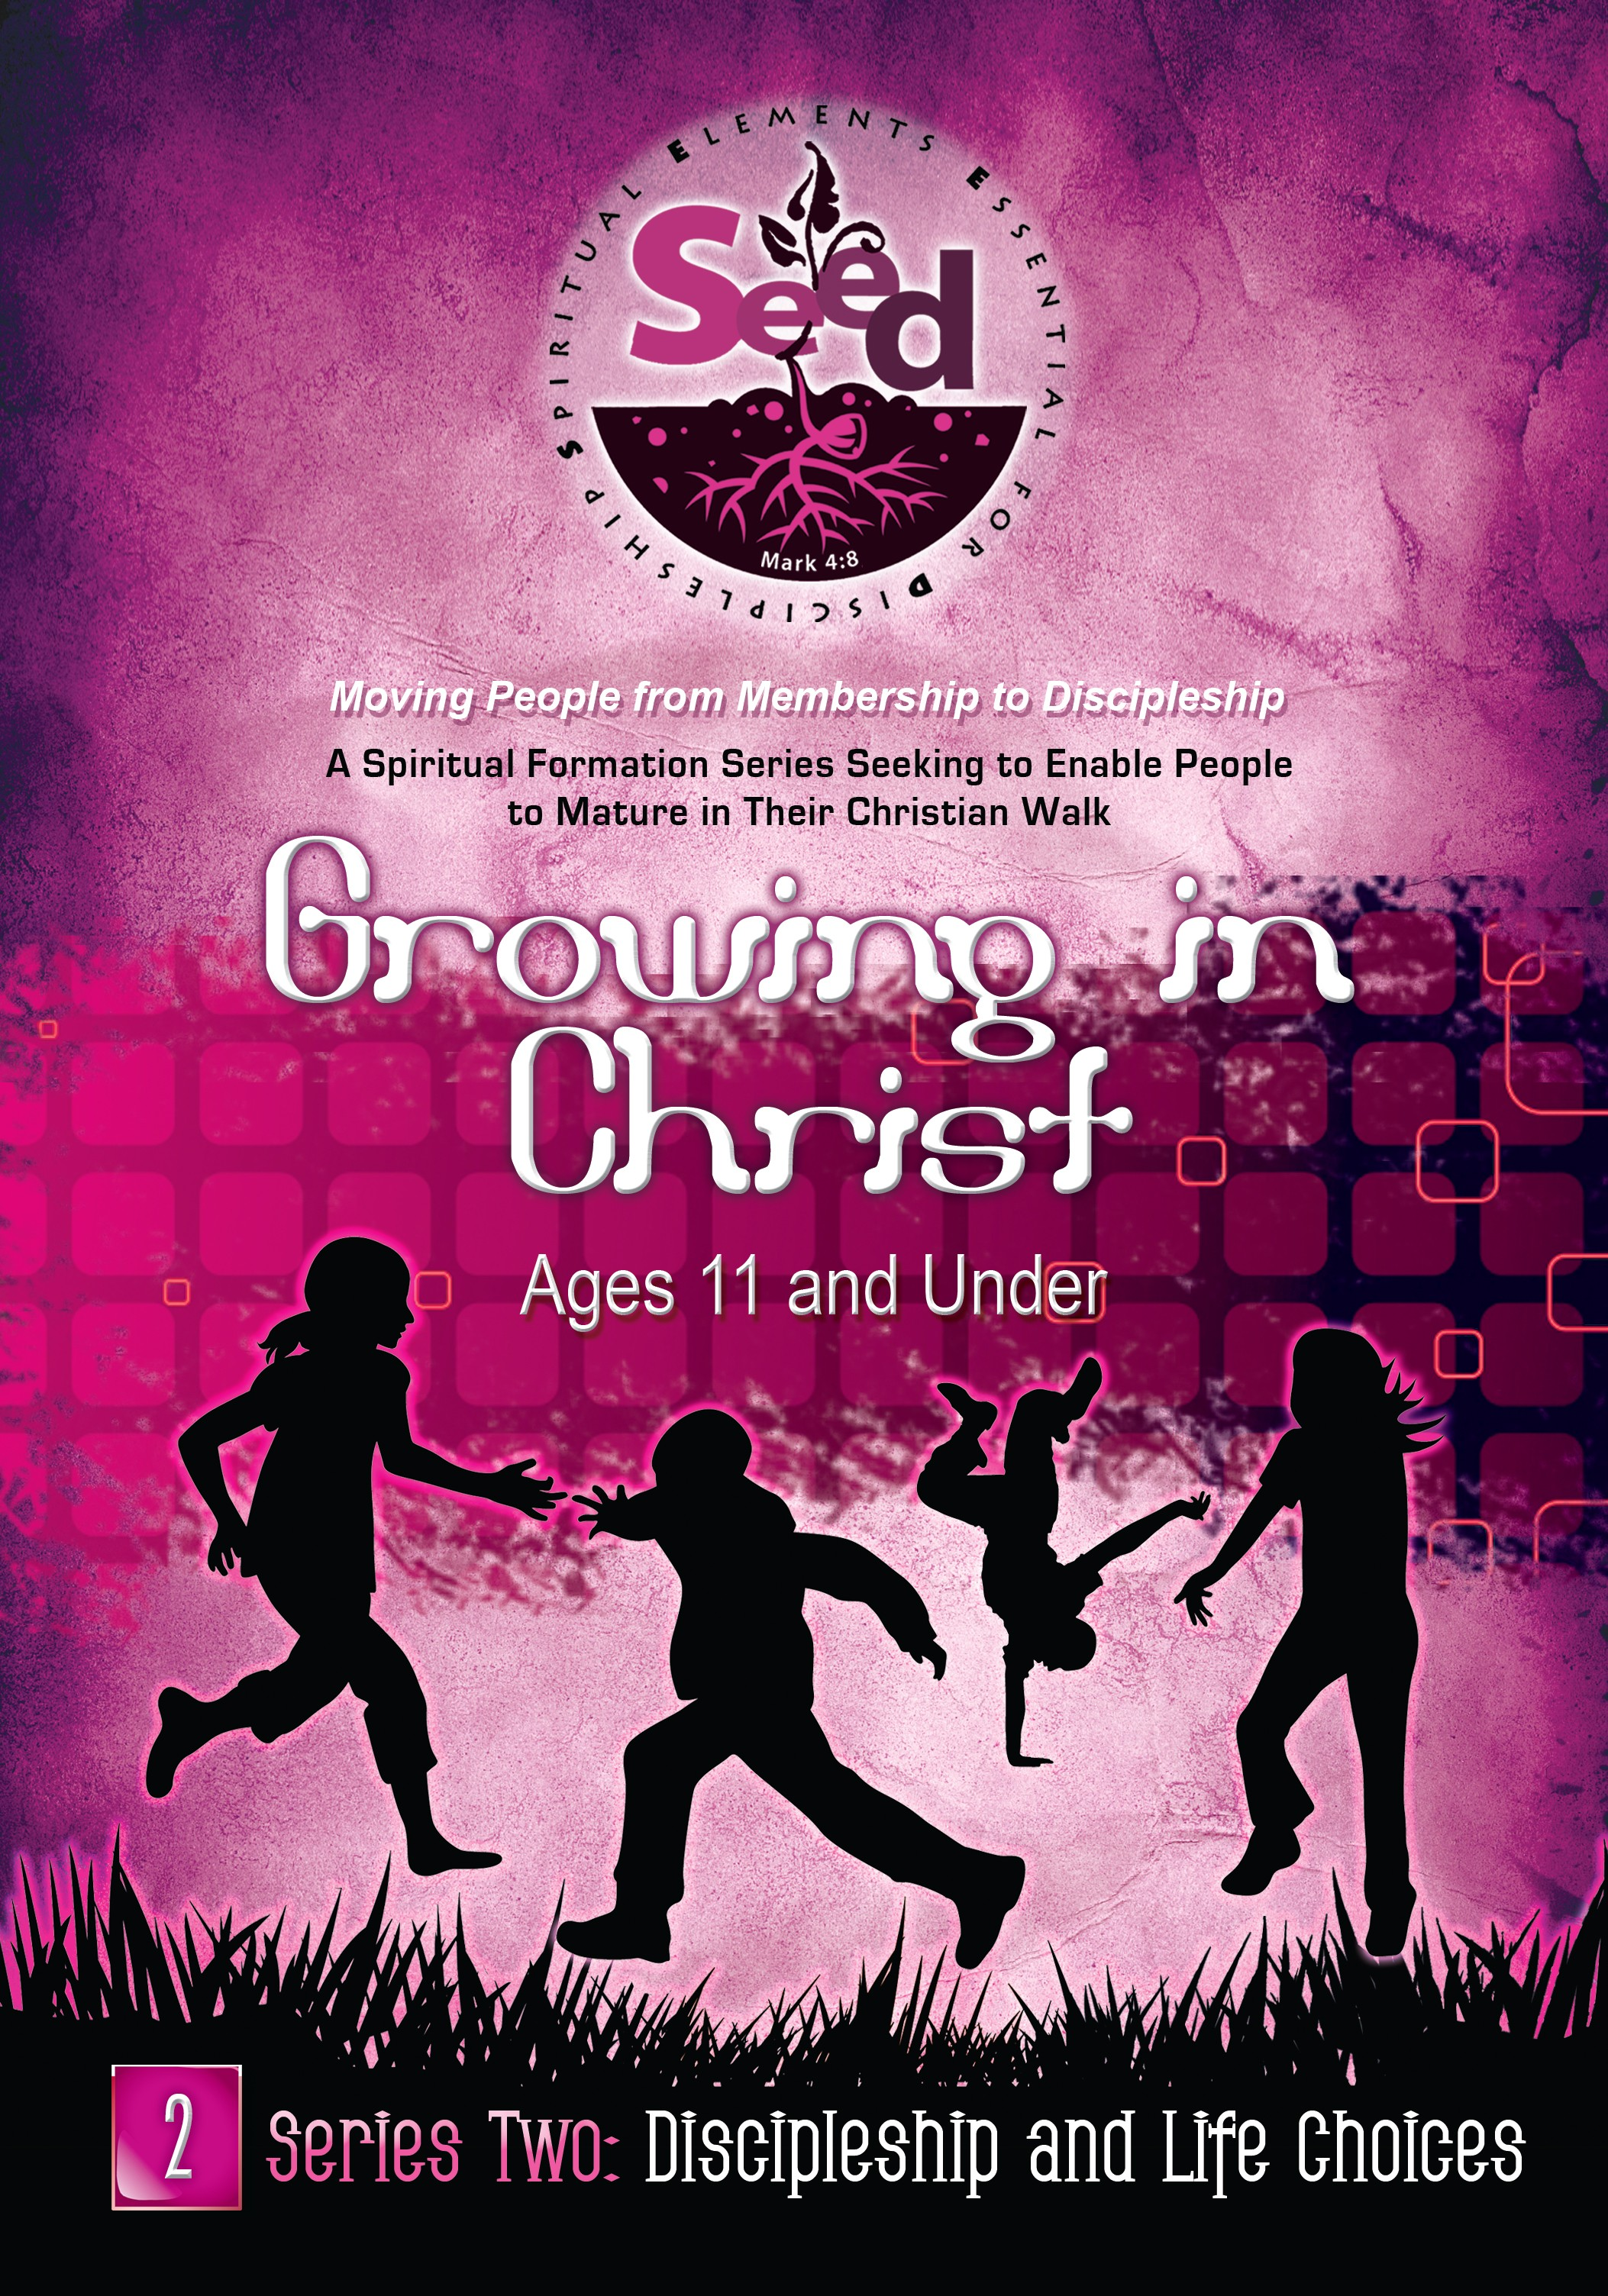 SEED Growing in Christ (Ages 11 and Under): Series 2: Discipleship and Life Choices